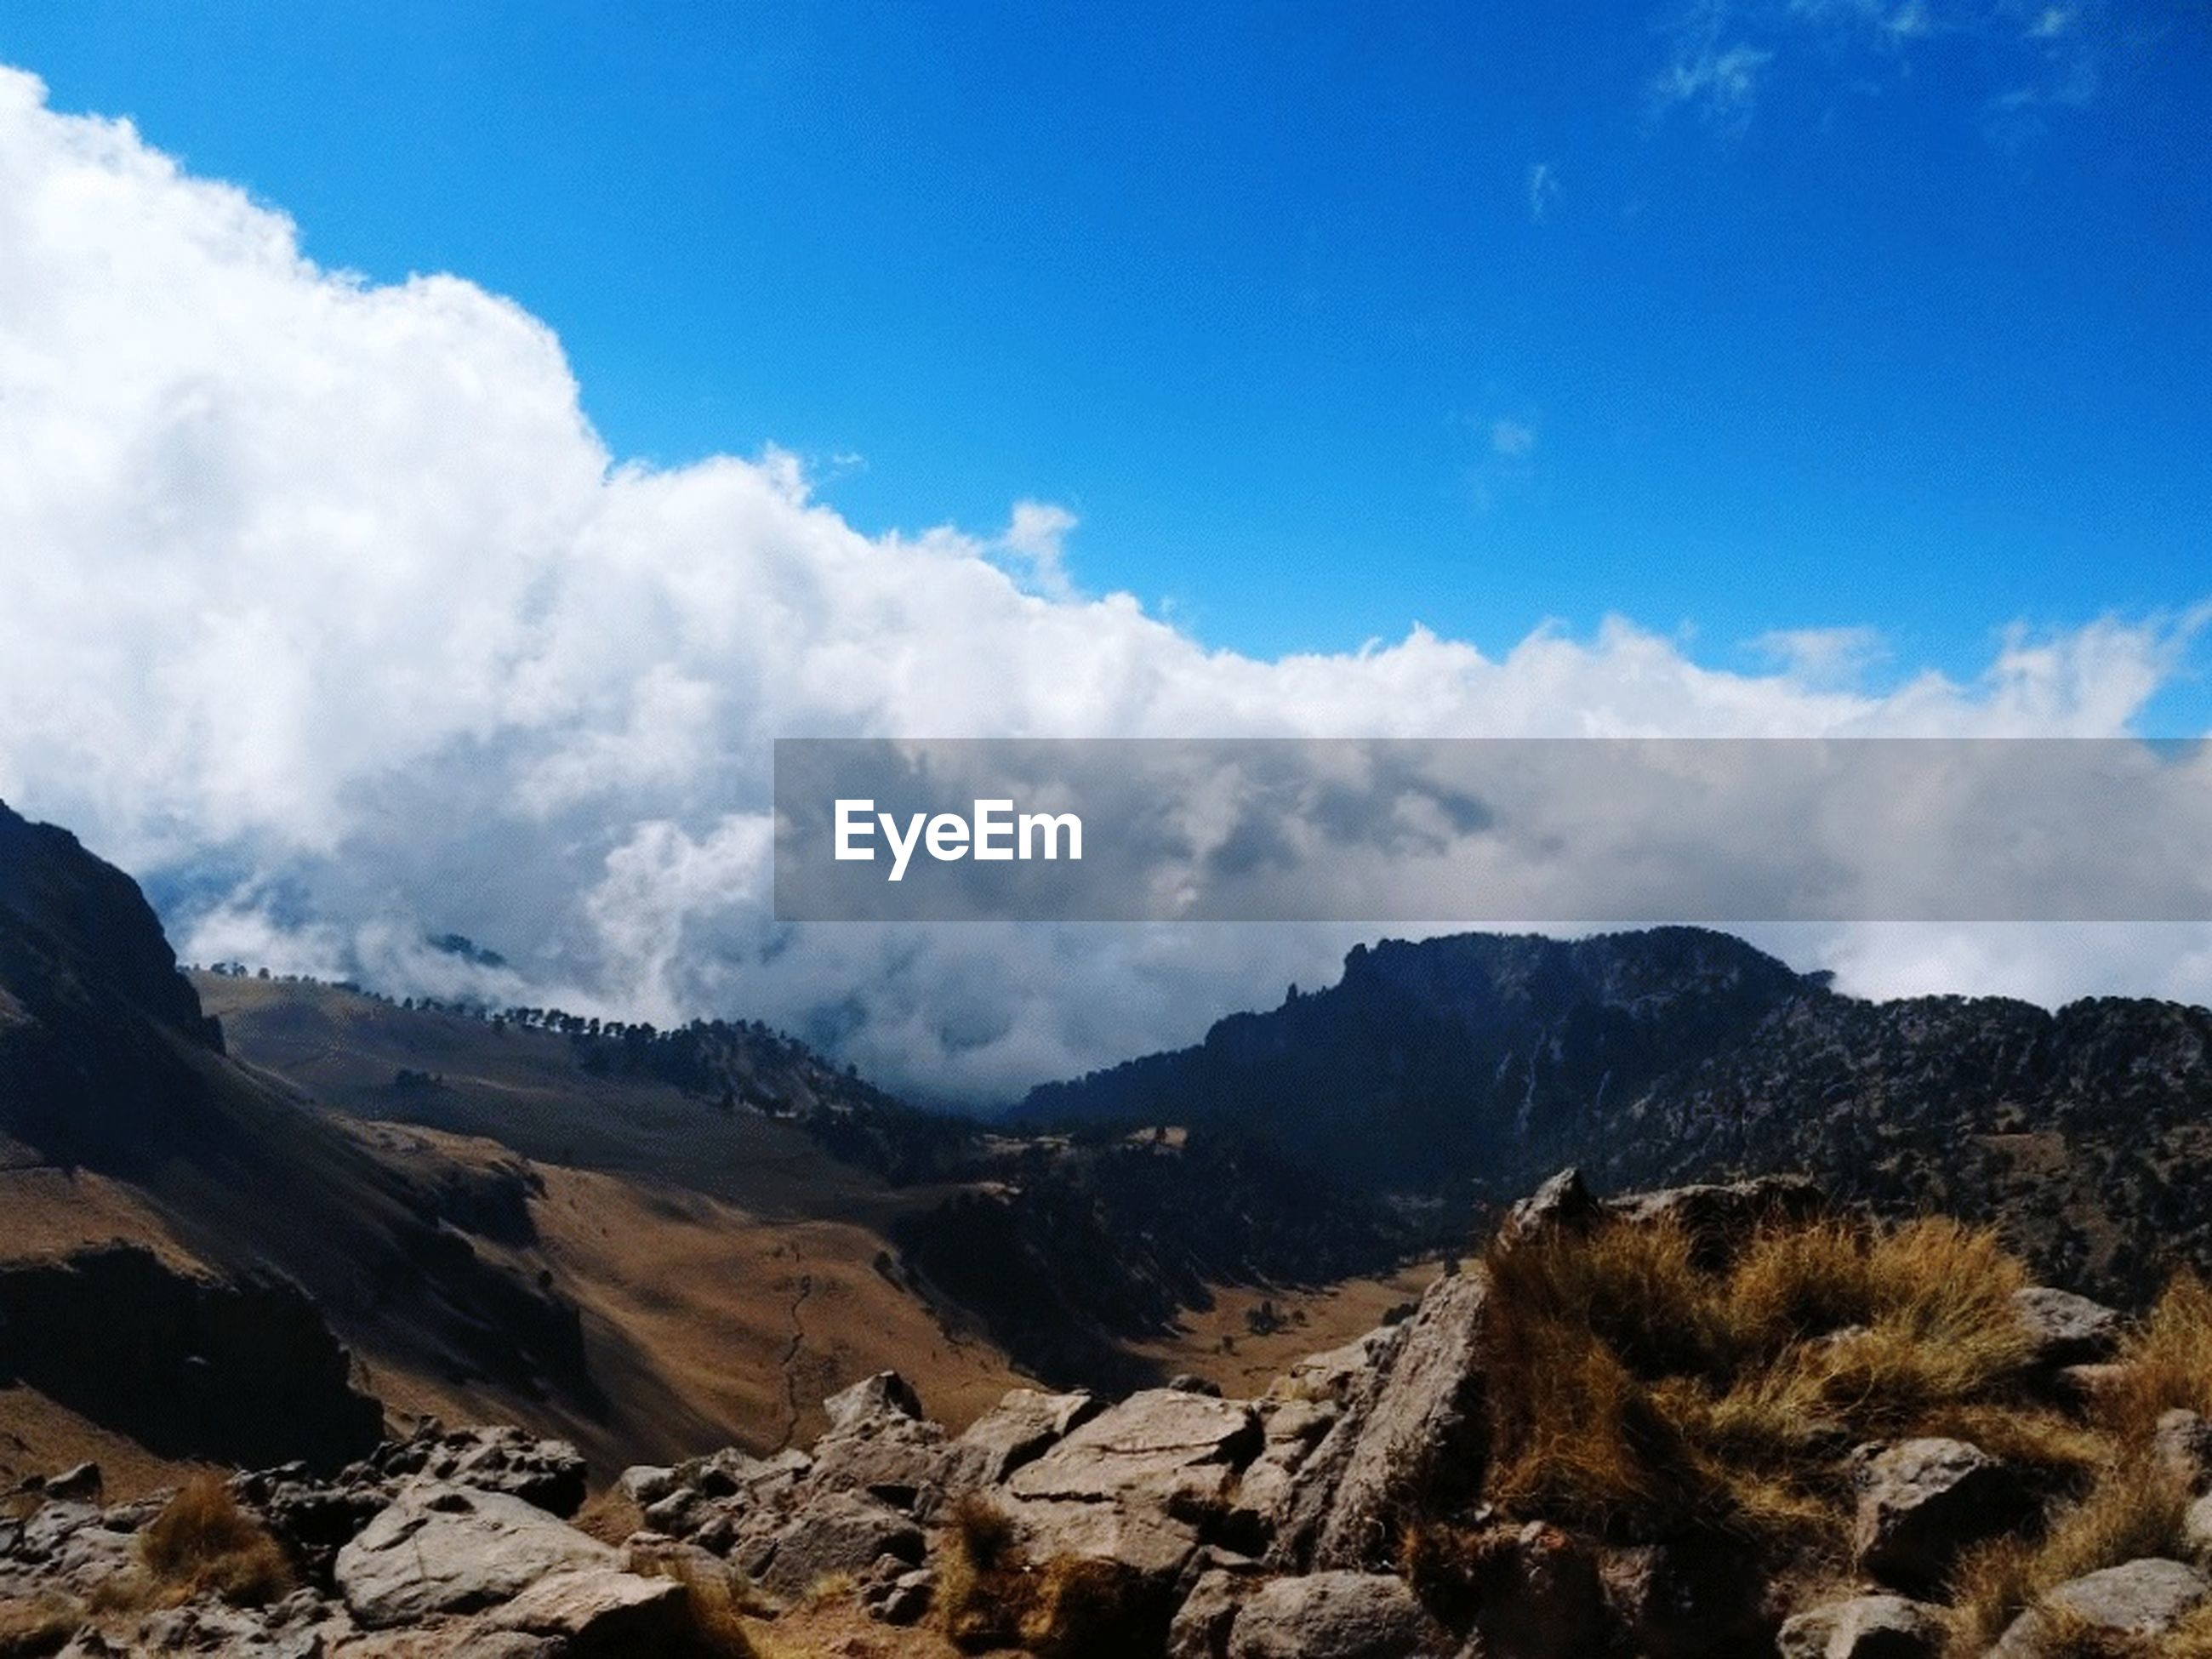 sky, mountain, cloud - sky, scenics - nature, environment, beauty in nature, landscape, nature, mountain range, tranquil scene, tranquility, no people, day, non-urban scene, blue, travel, outdoors, rock, land, travel destinations, formation, mountain peak